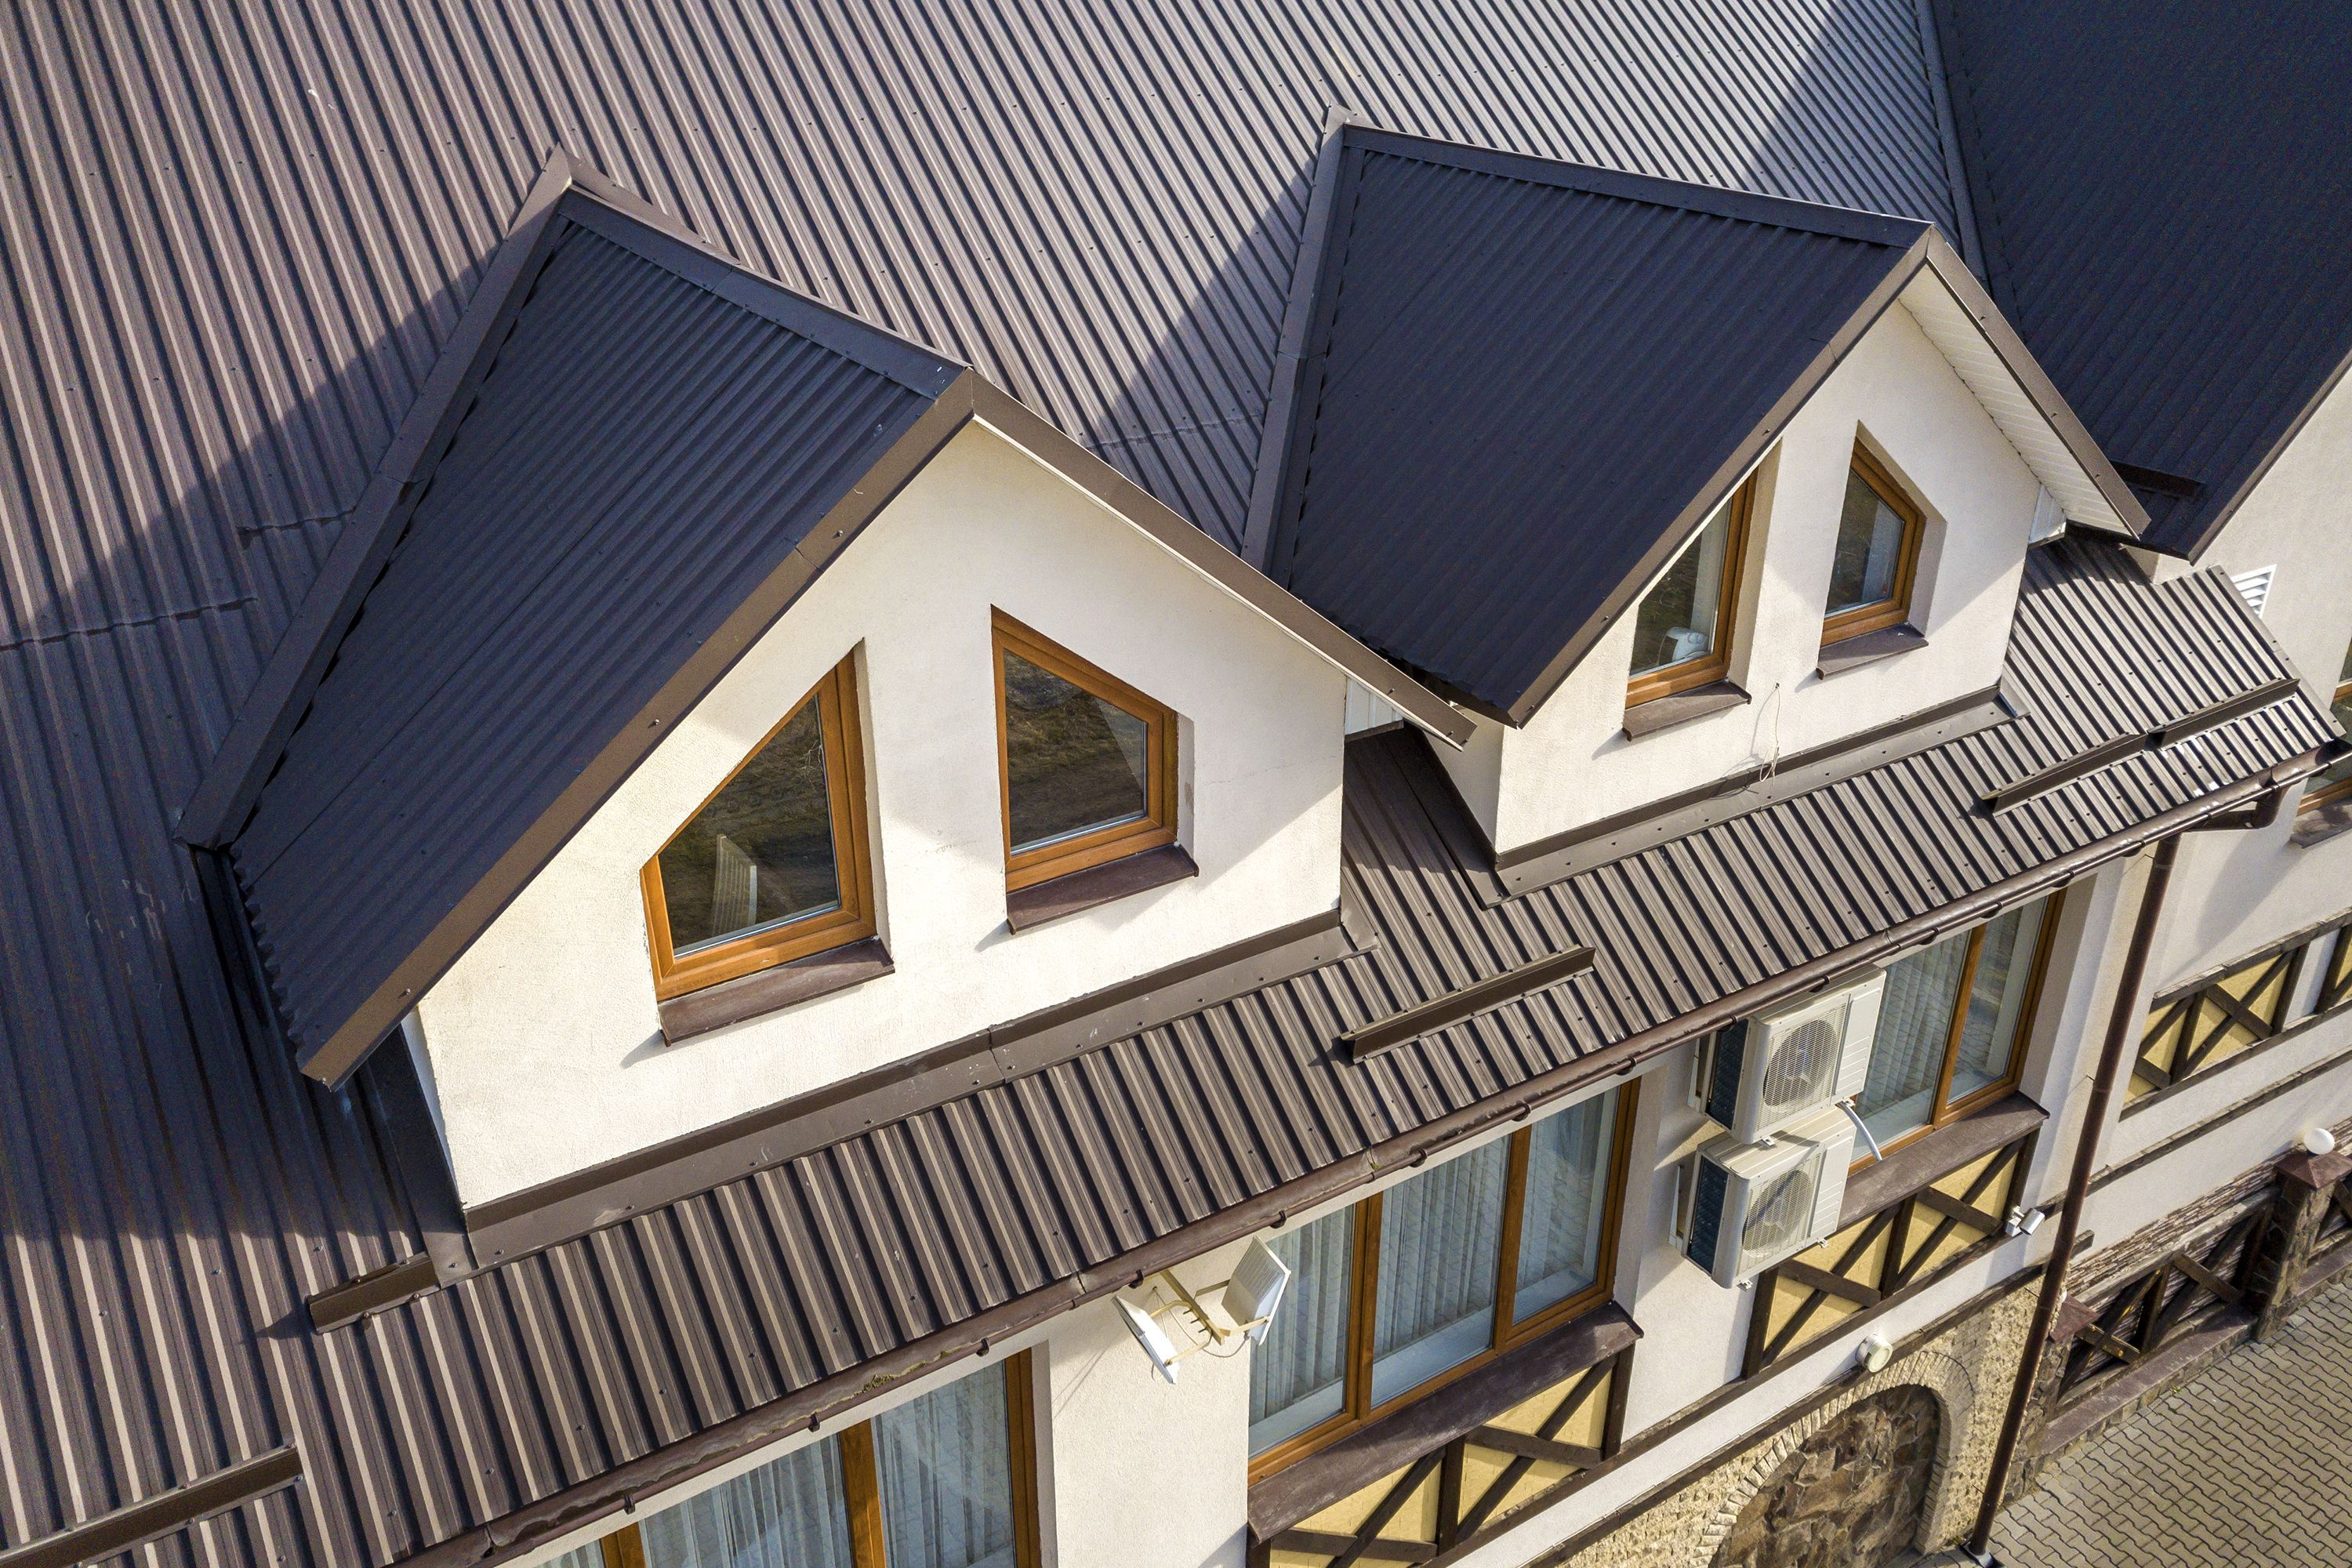 Benefits Of Installing Standing Seam Metal Roofing In 2020 Residential Metal Roofing House Roof Metal Roof